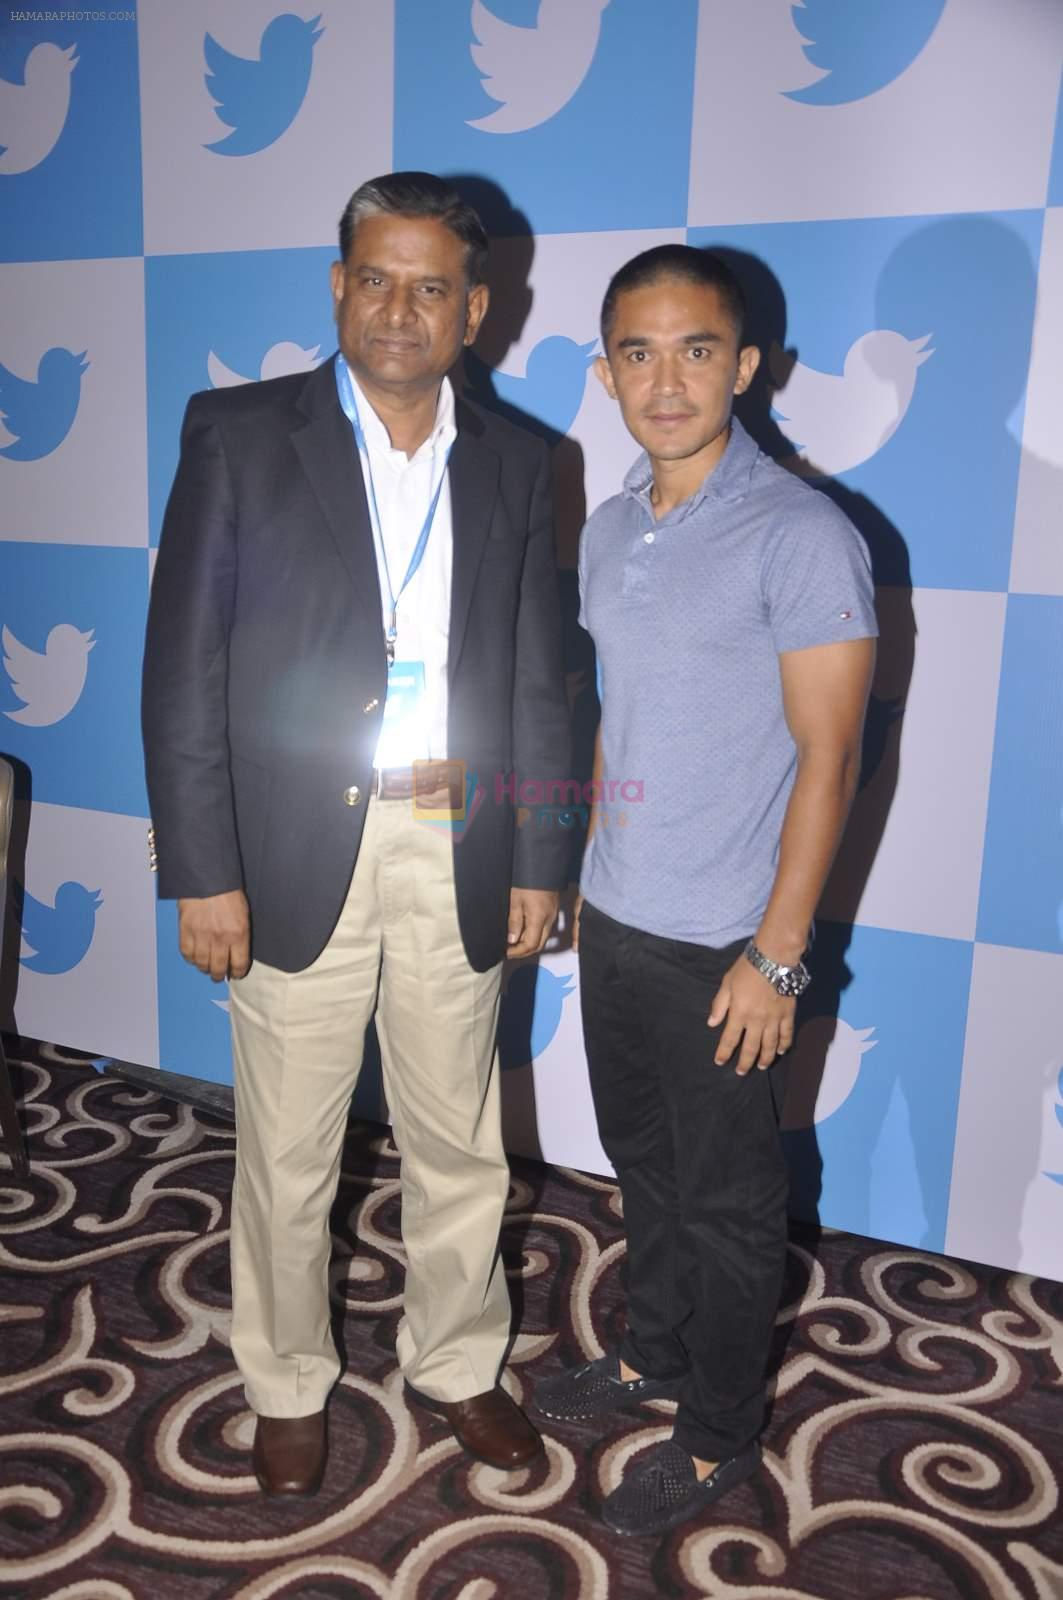 Sunil chetri at twitter India Event on 30th June 2015